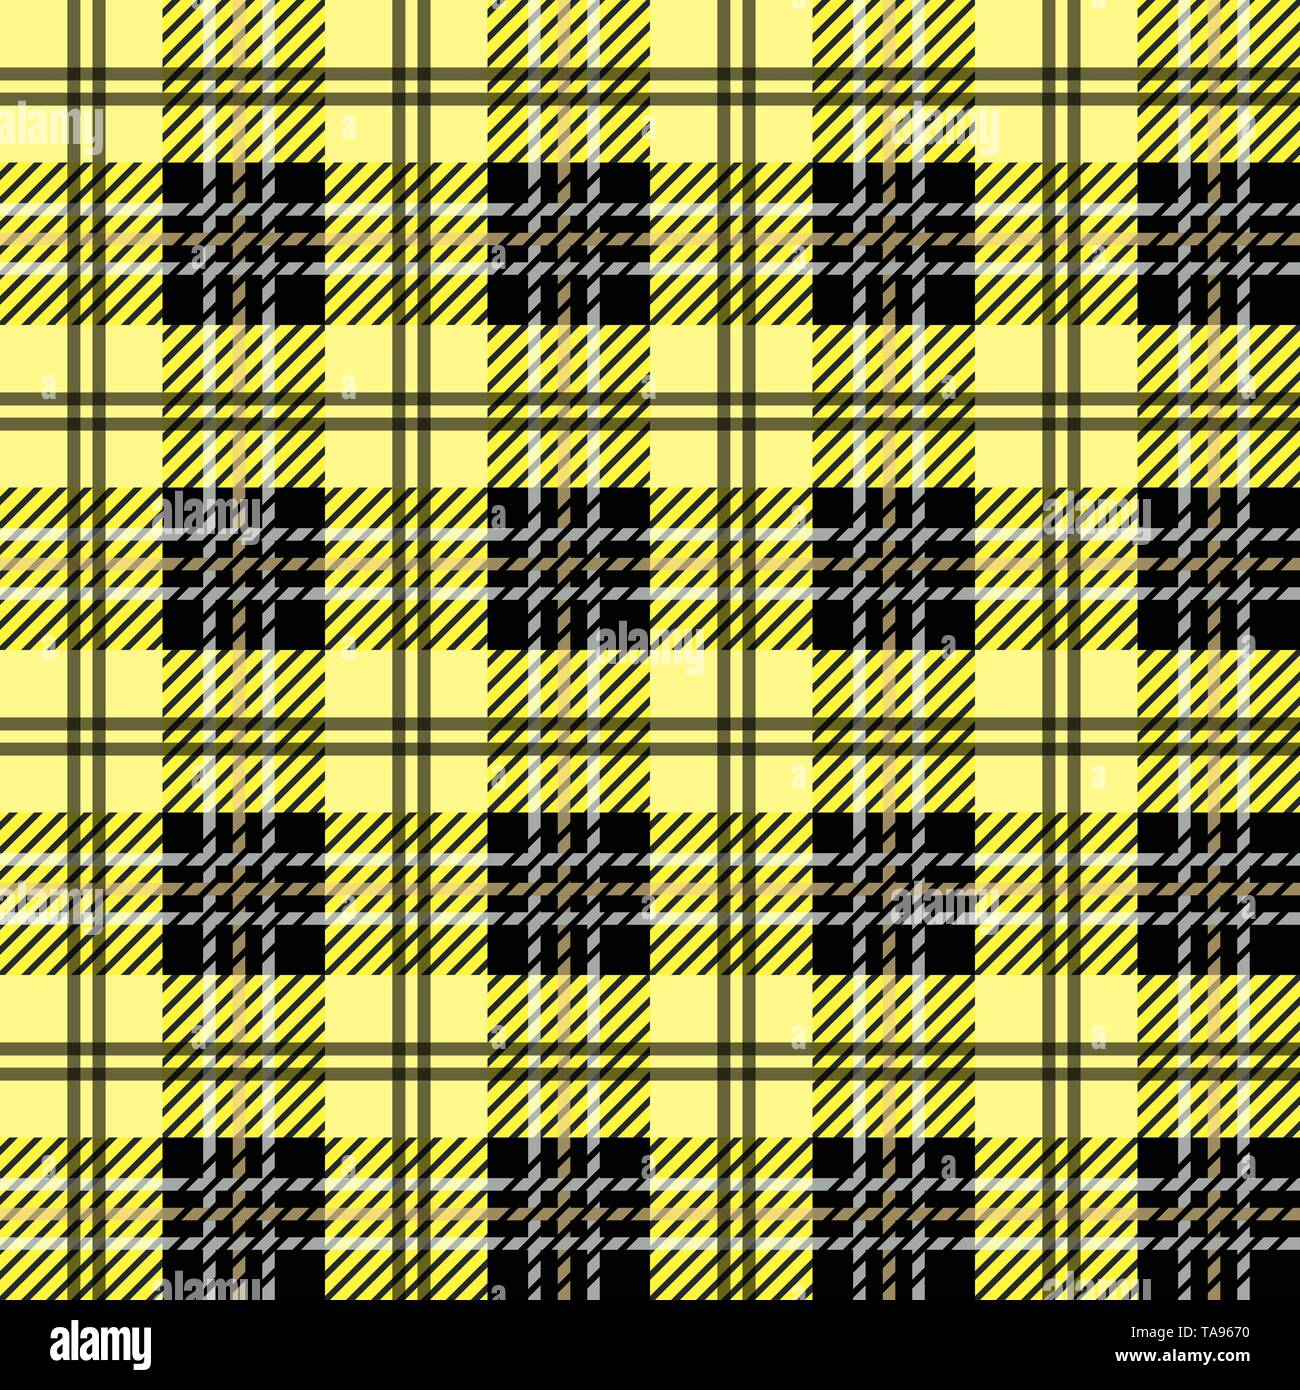 f04c9b0eff Tartan plaid. Scottish pattern in black, white and yellow cage. Scottish  cage. Traditional Scottish checkered background. Seamless fabric texture.  Vec